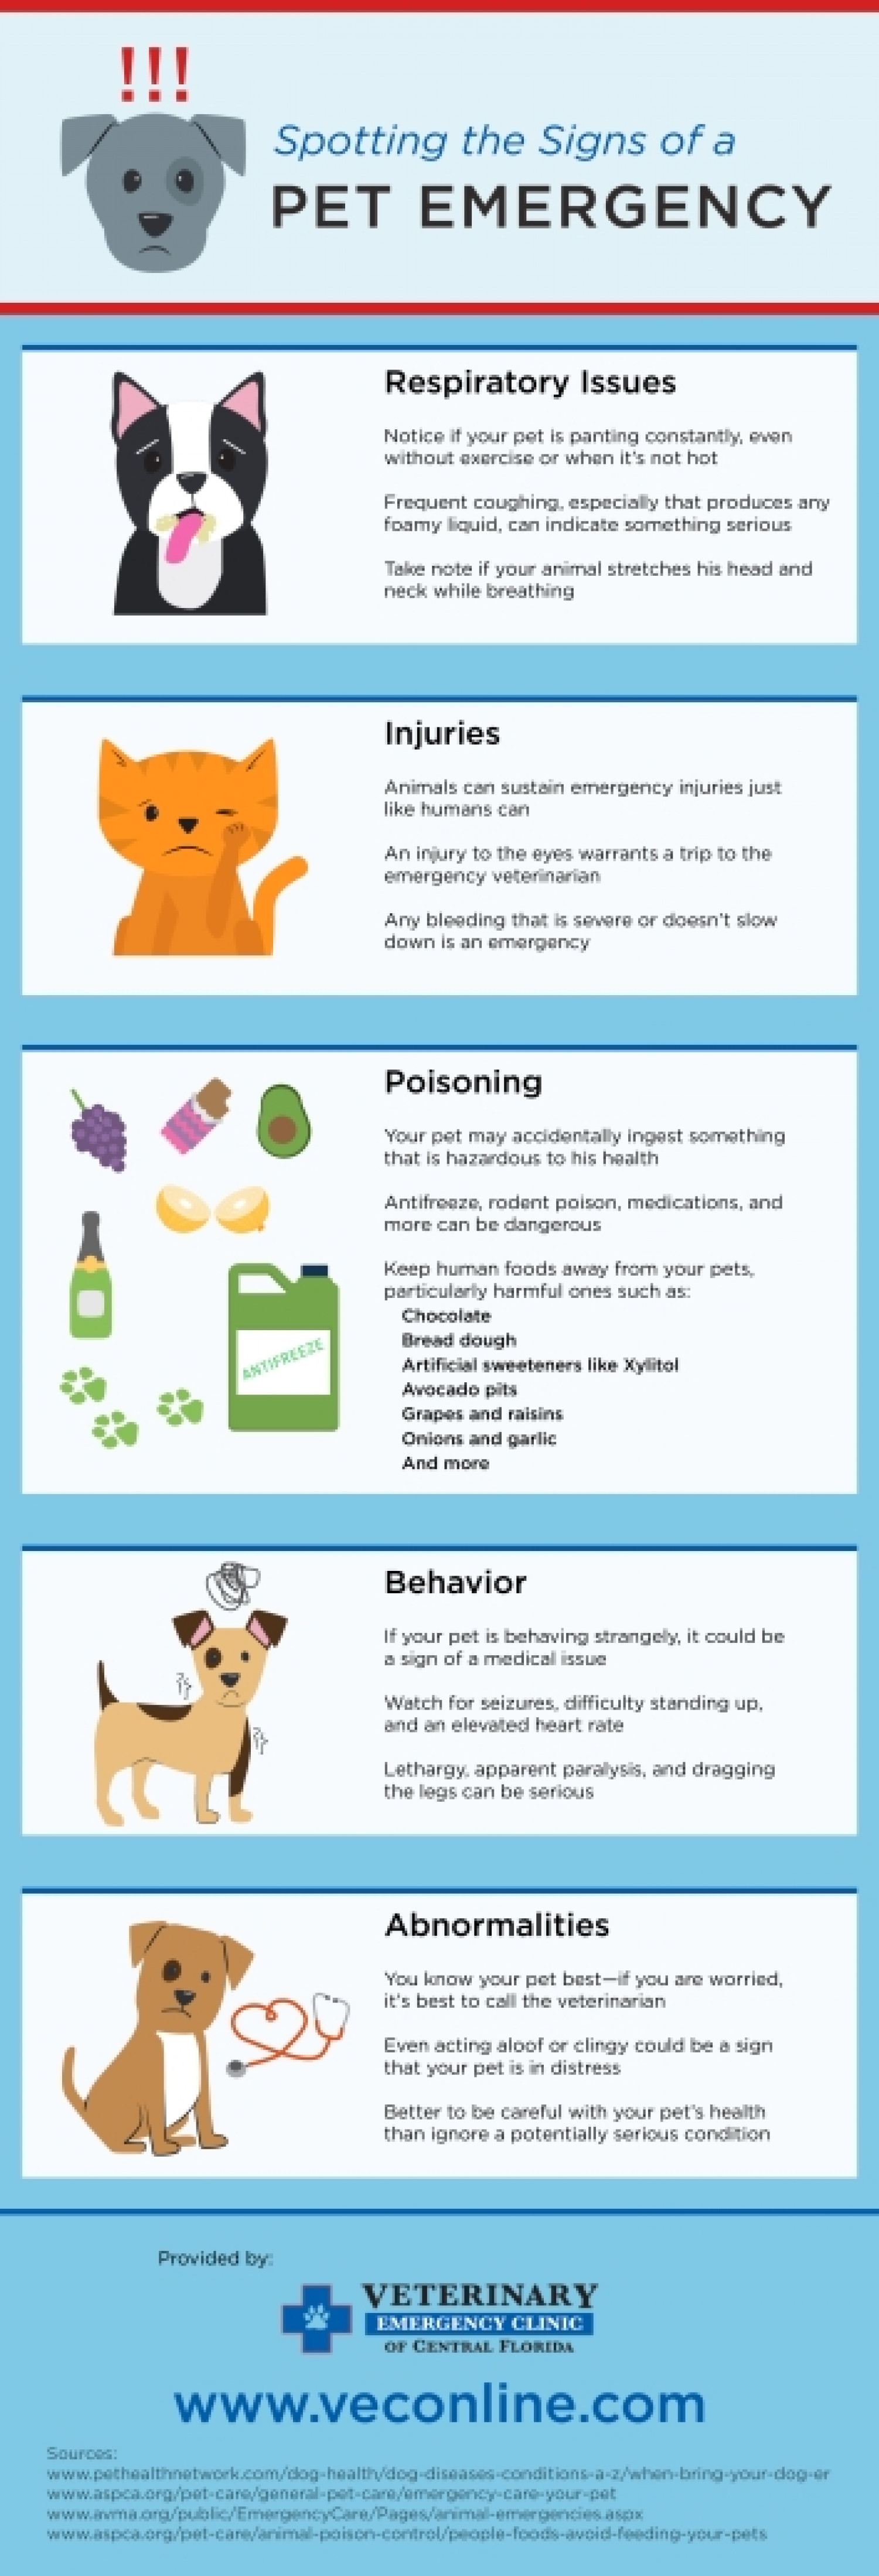 Spotting the Signs of a Pet Emergency Infographic